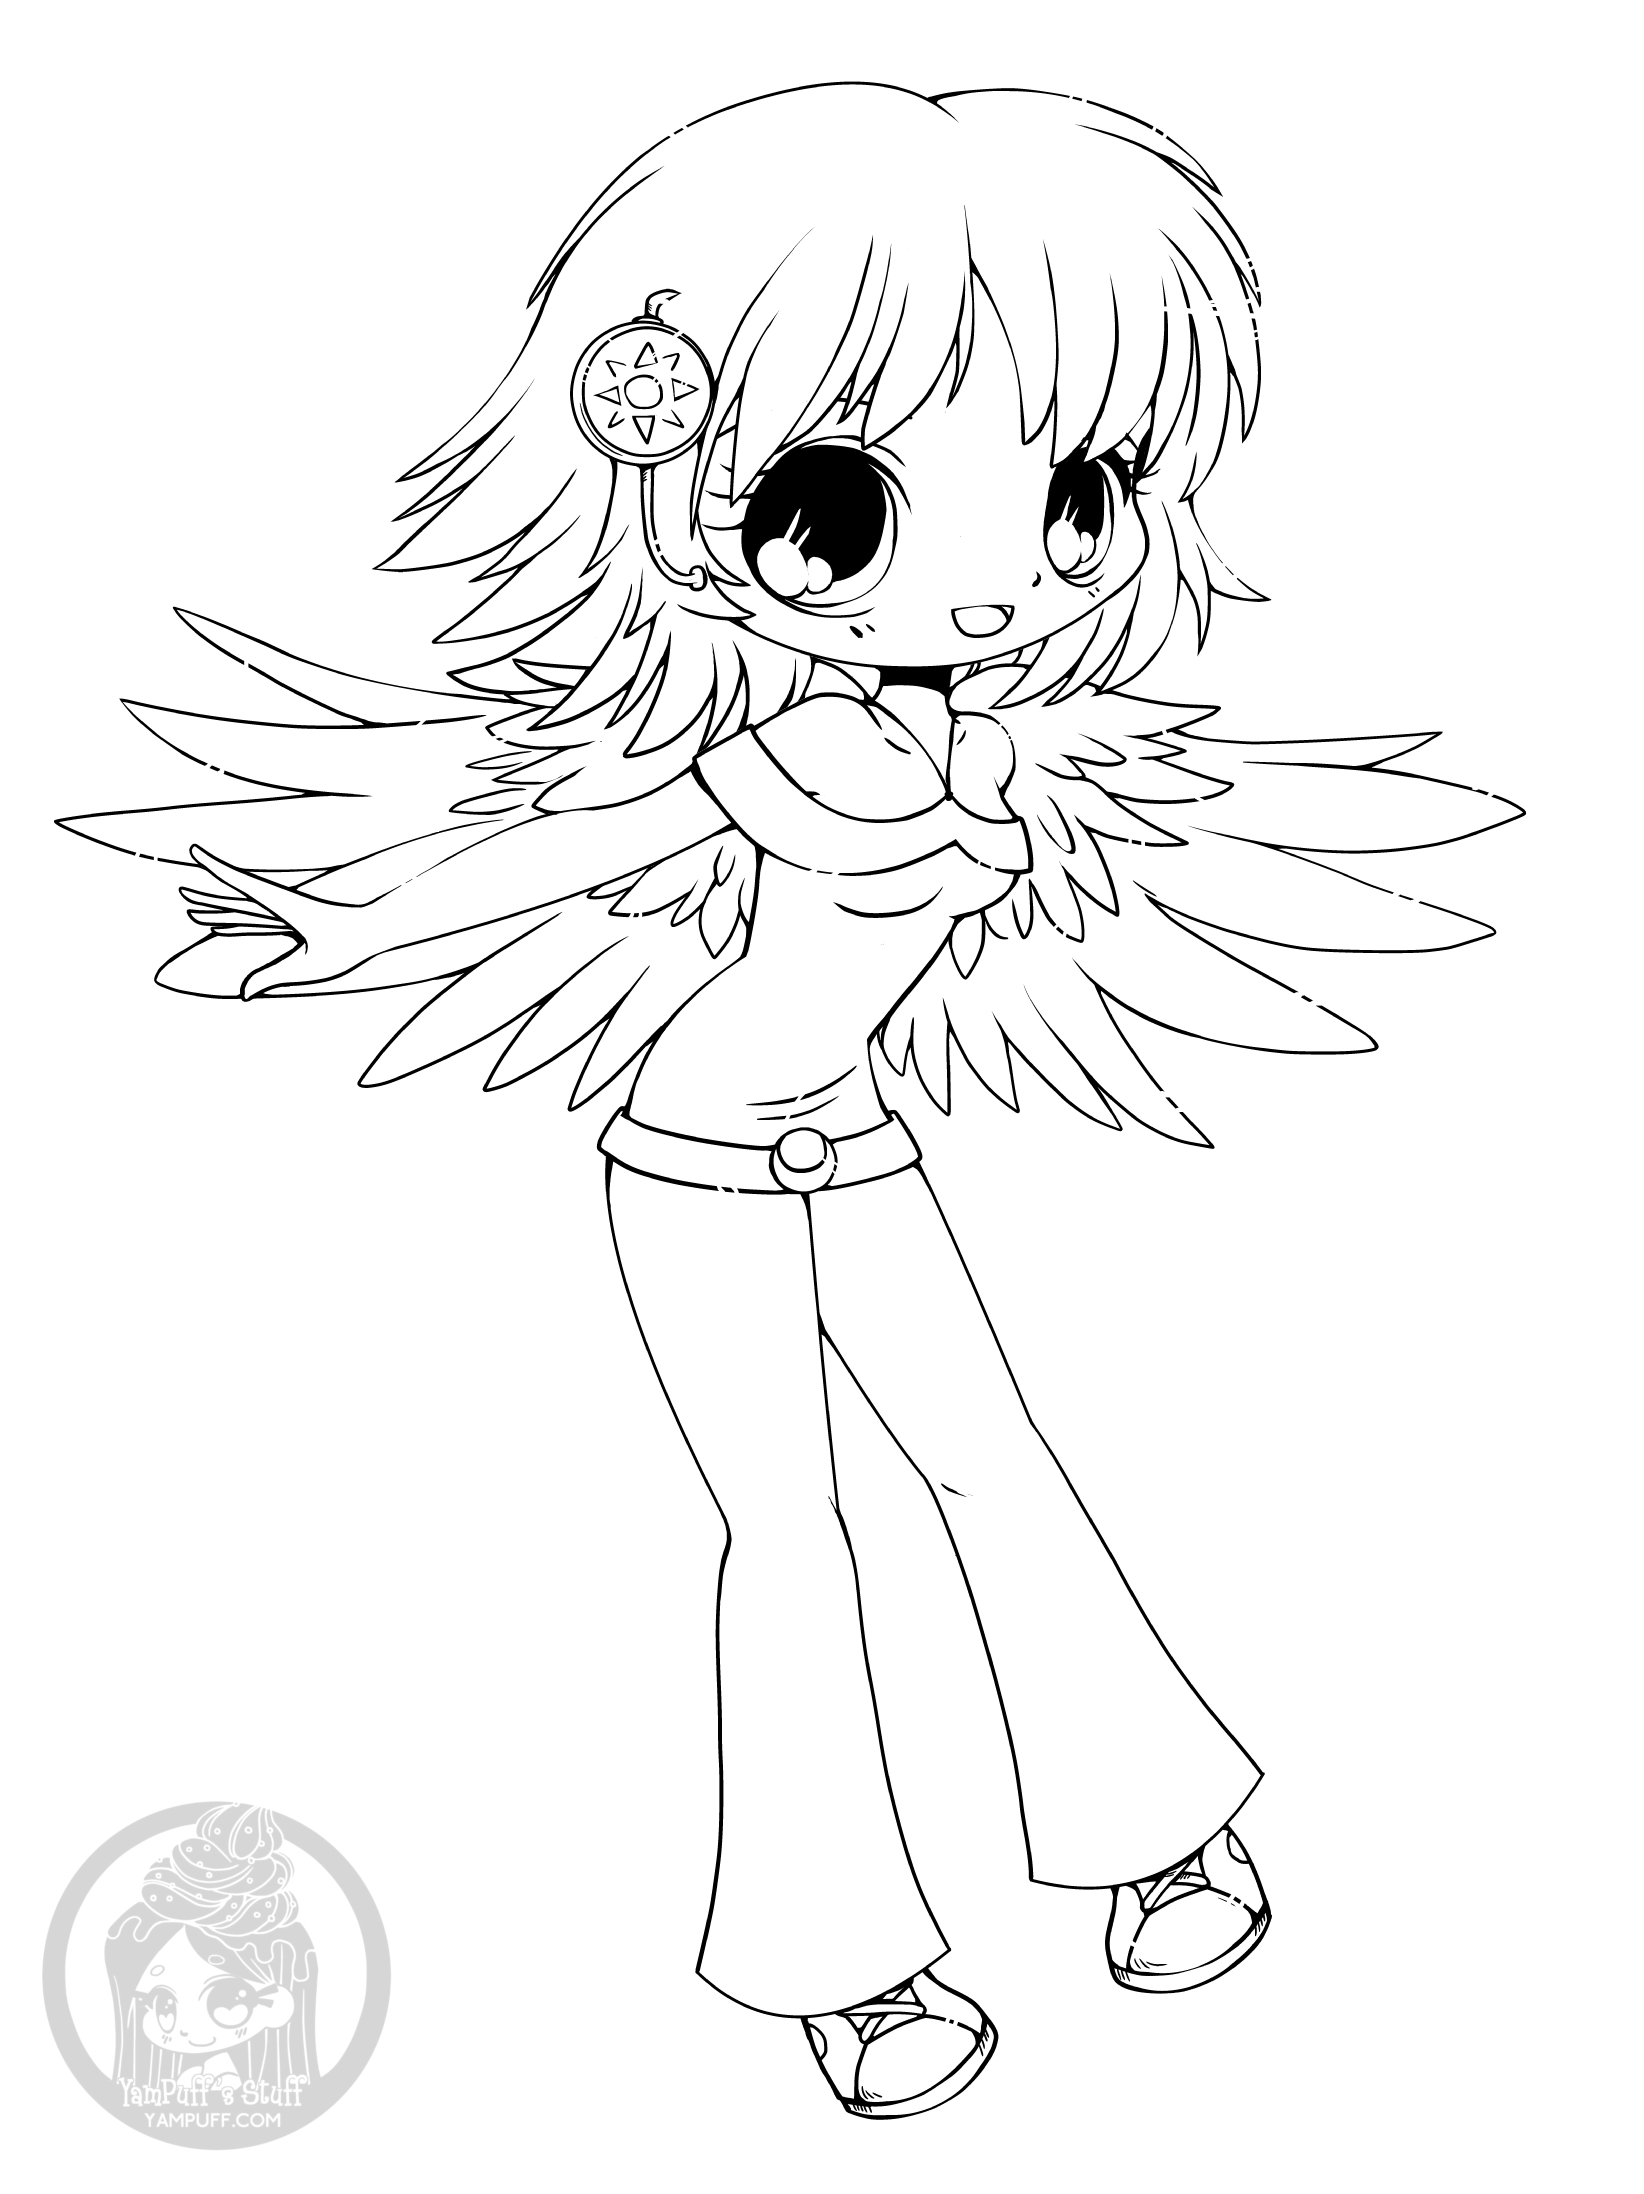 coloring pages of chibi girls best free chibi anime girls coloring pages photos free chibi pages of coloring girls